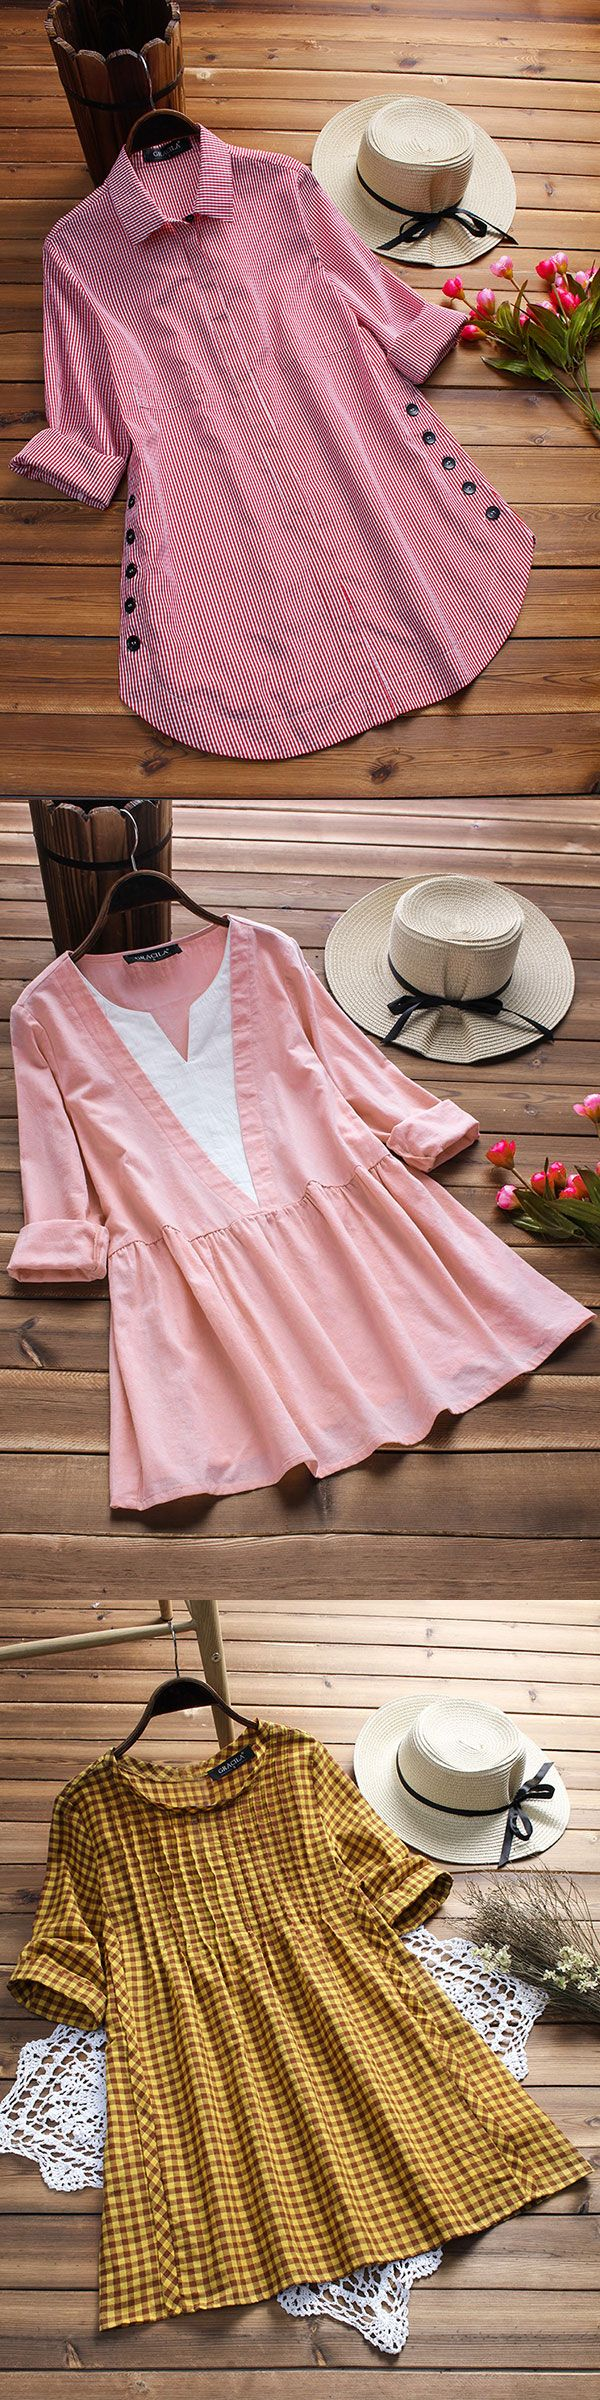 2018 summer fashion style shirts and blouses for women, casual and soft material clothes. Shop now! #shirts #tops #2018